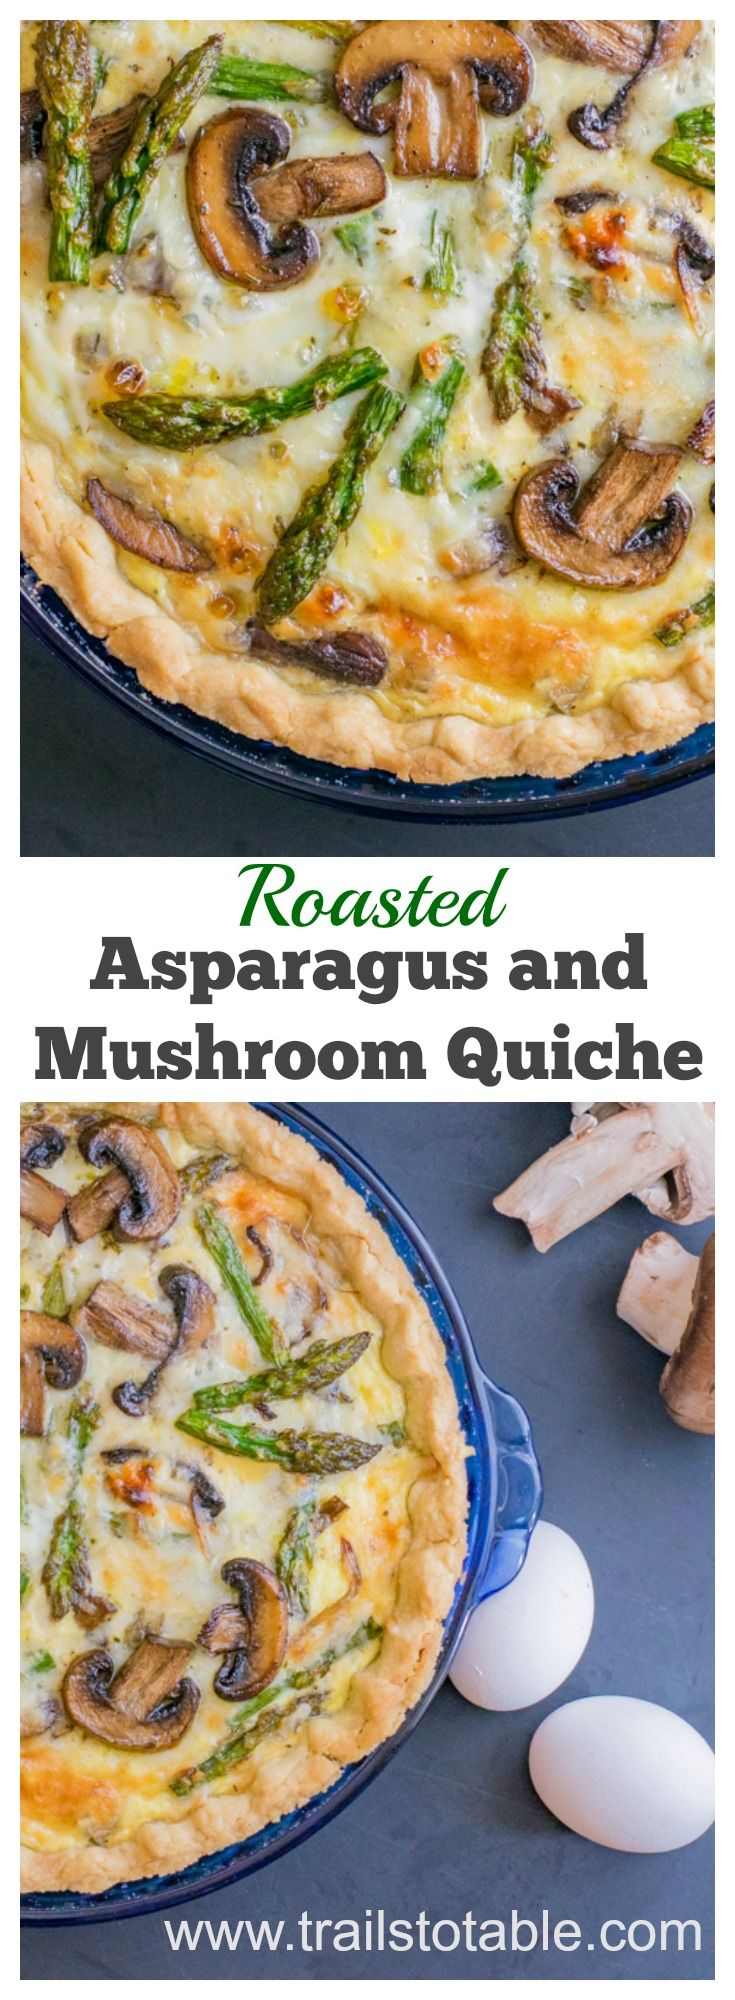 Roasted Asparagus and Mushroom Quiche. Roasted spring vegetables in an egg Gruyere cheese quiche with a delightfully flaky crust.